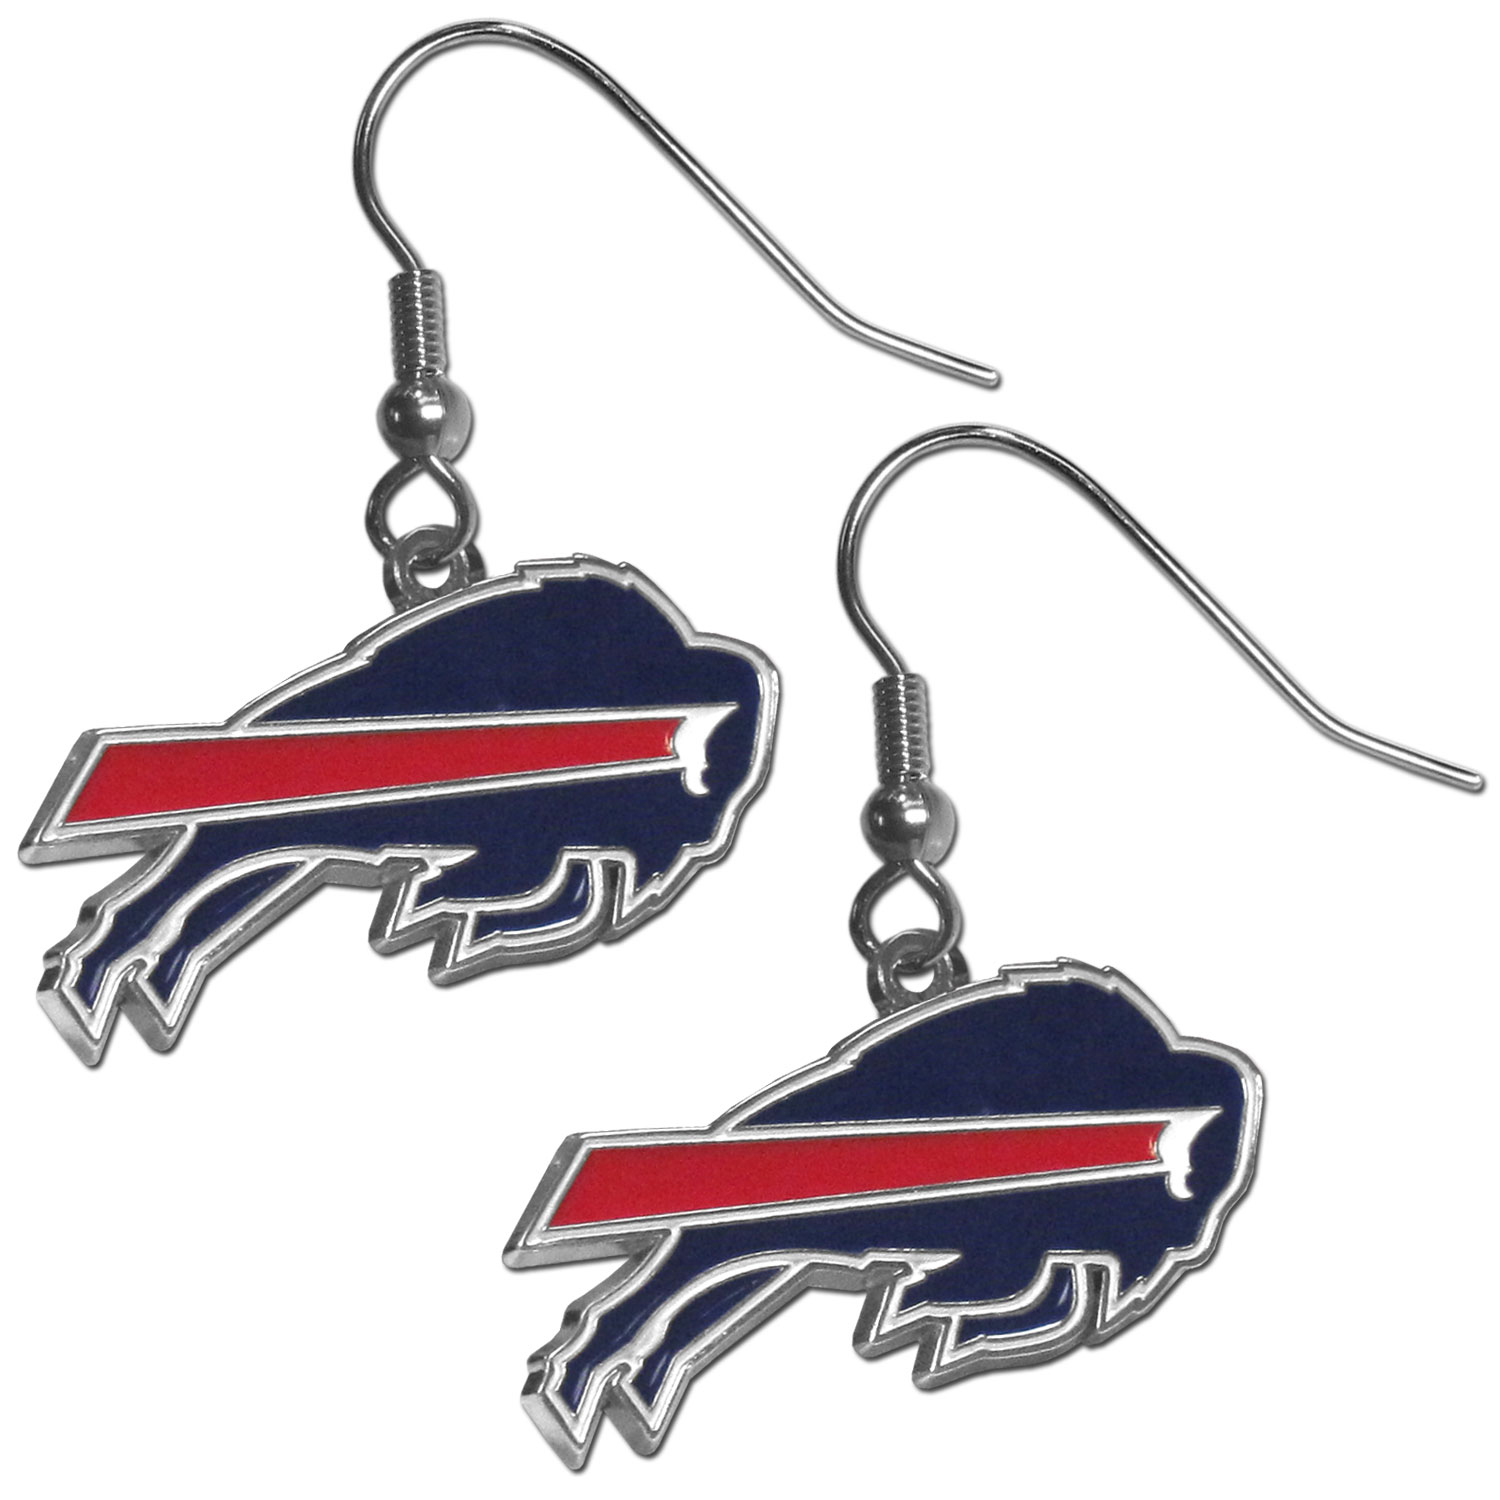 Buffalo Bills Chrome Dangle Earrings - Officially licensed NFL Buffalo Bills dangle earrings have fully cast Buffalo Bills charms with exceptional detail and a hand enameled finish. The Buffalo Bills earrings have a high polish nickel free chrome finish and hypoallergenic fishhook posts. Officially licensed NFL product Licensee: Siskiyou Buckle Thank you for visiting CrazedOutSports.com